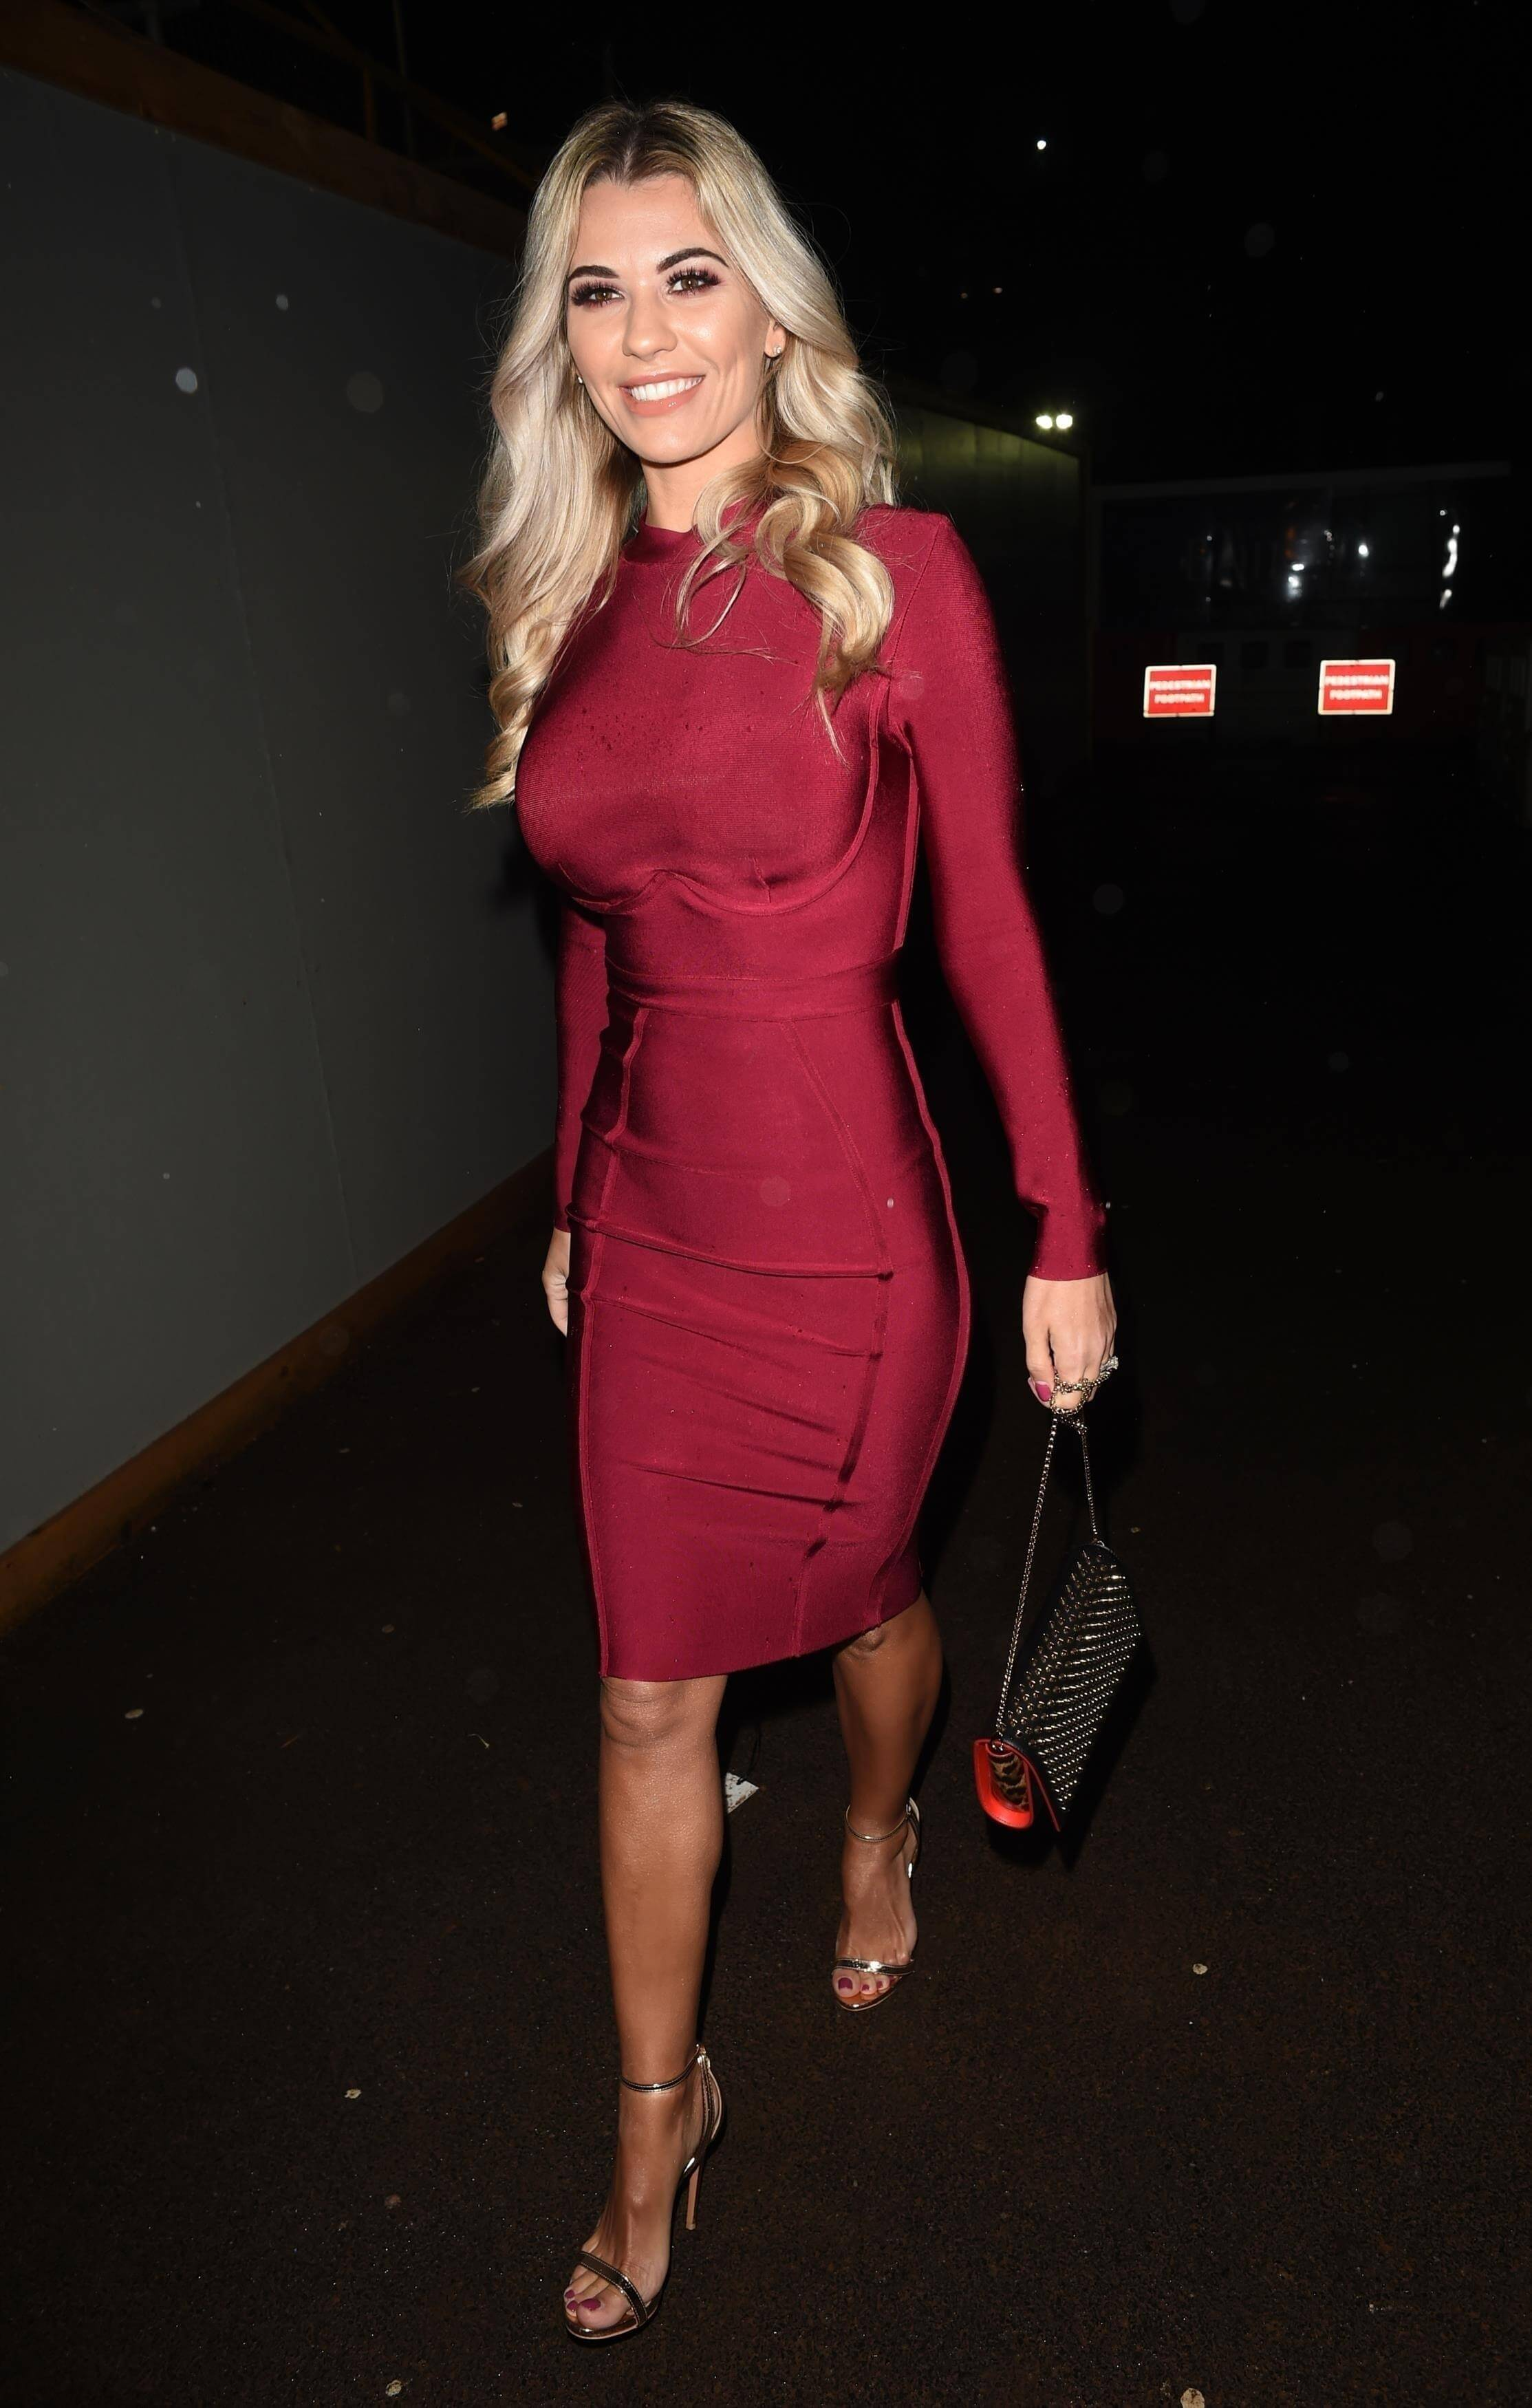 Christine McGuinness sexy long red dress pic